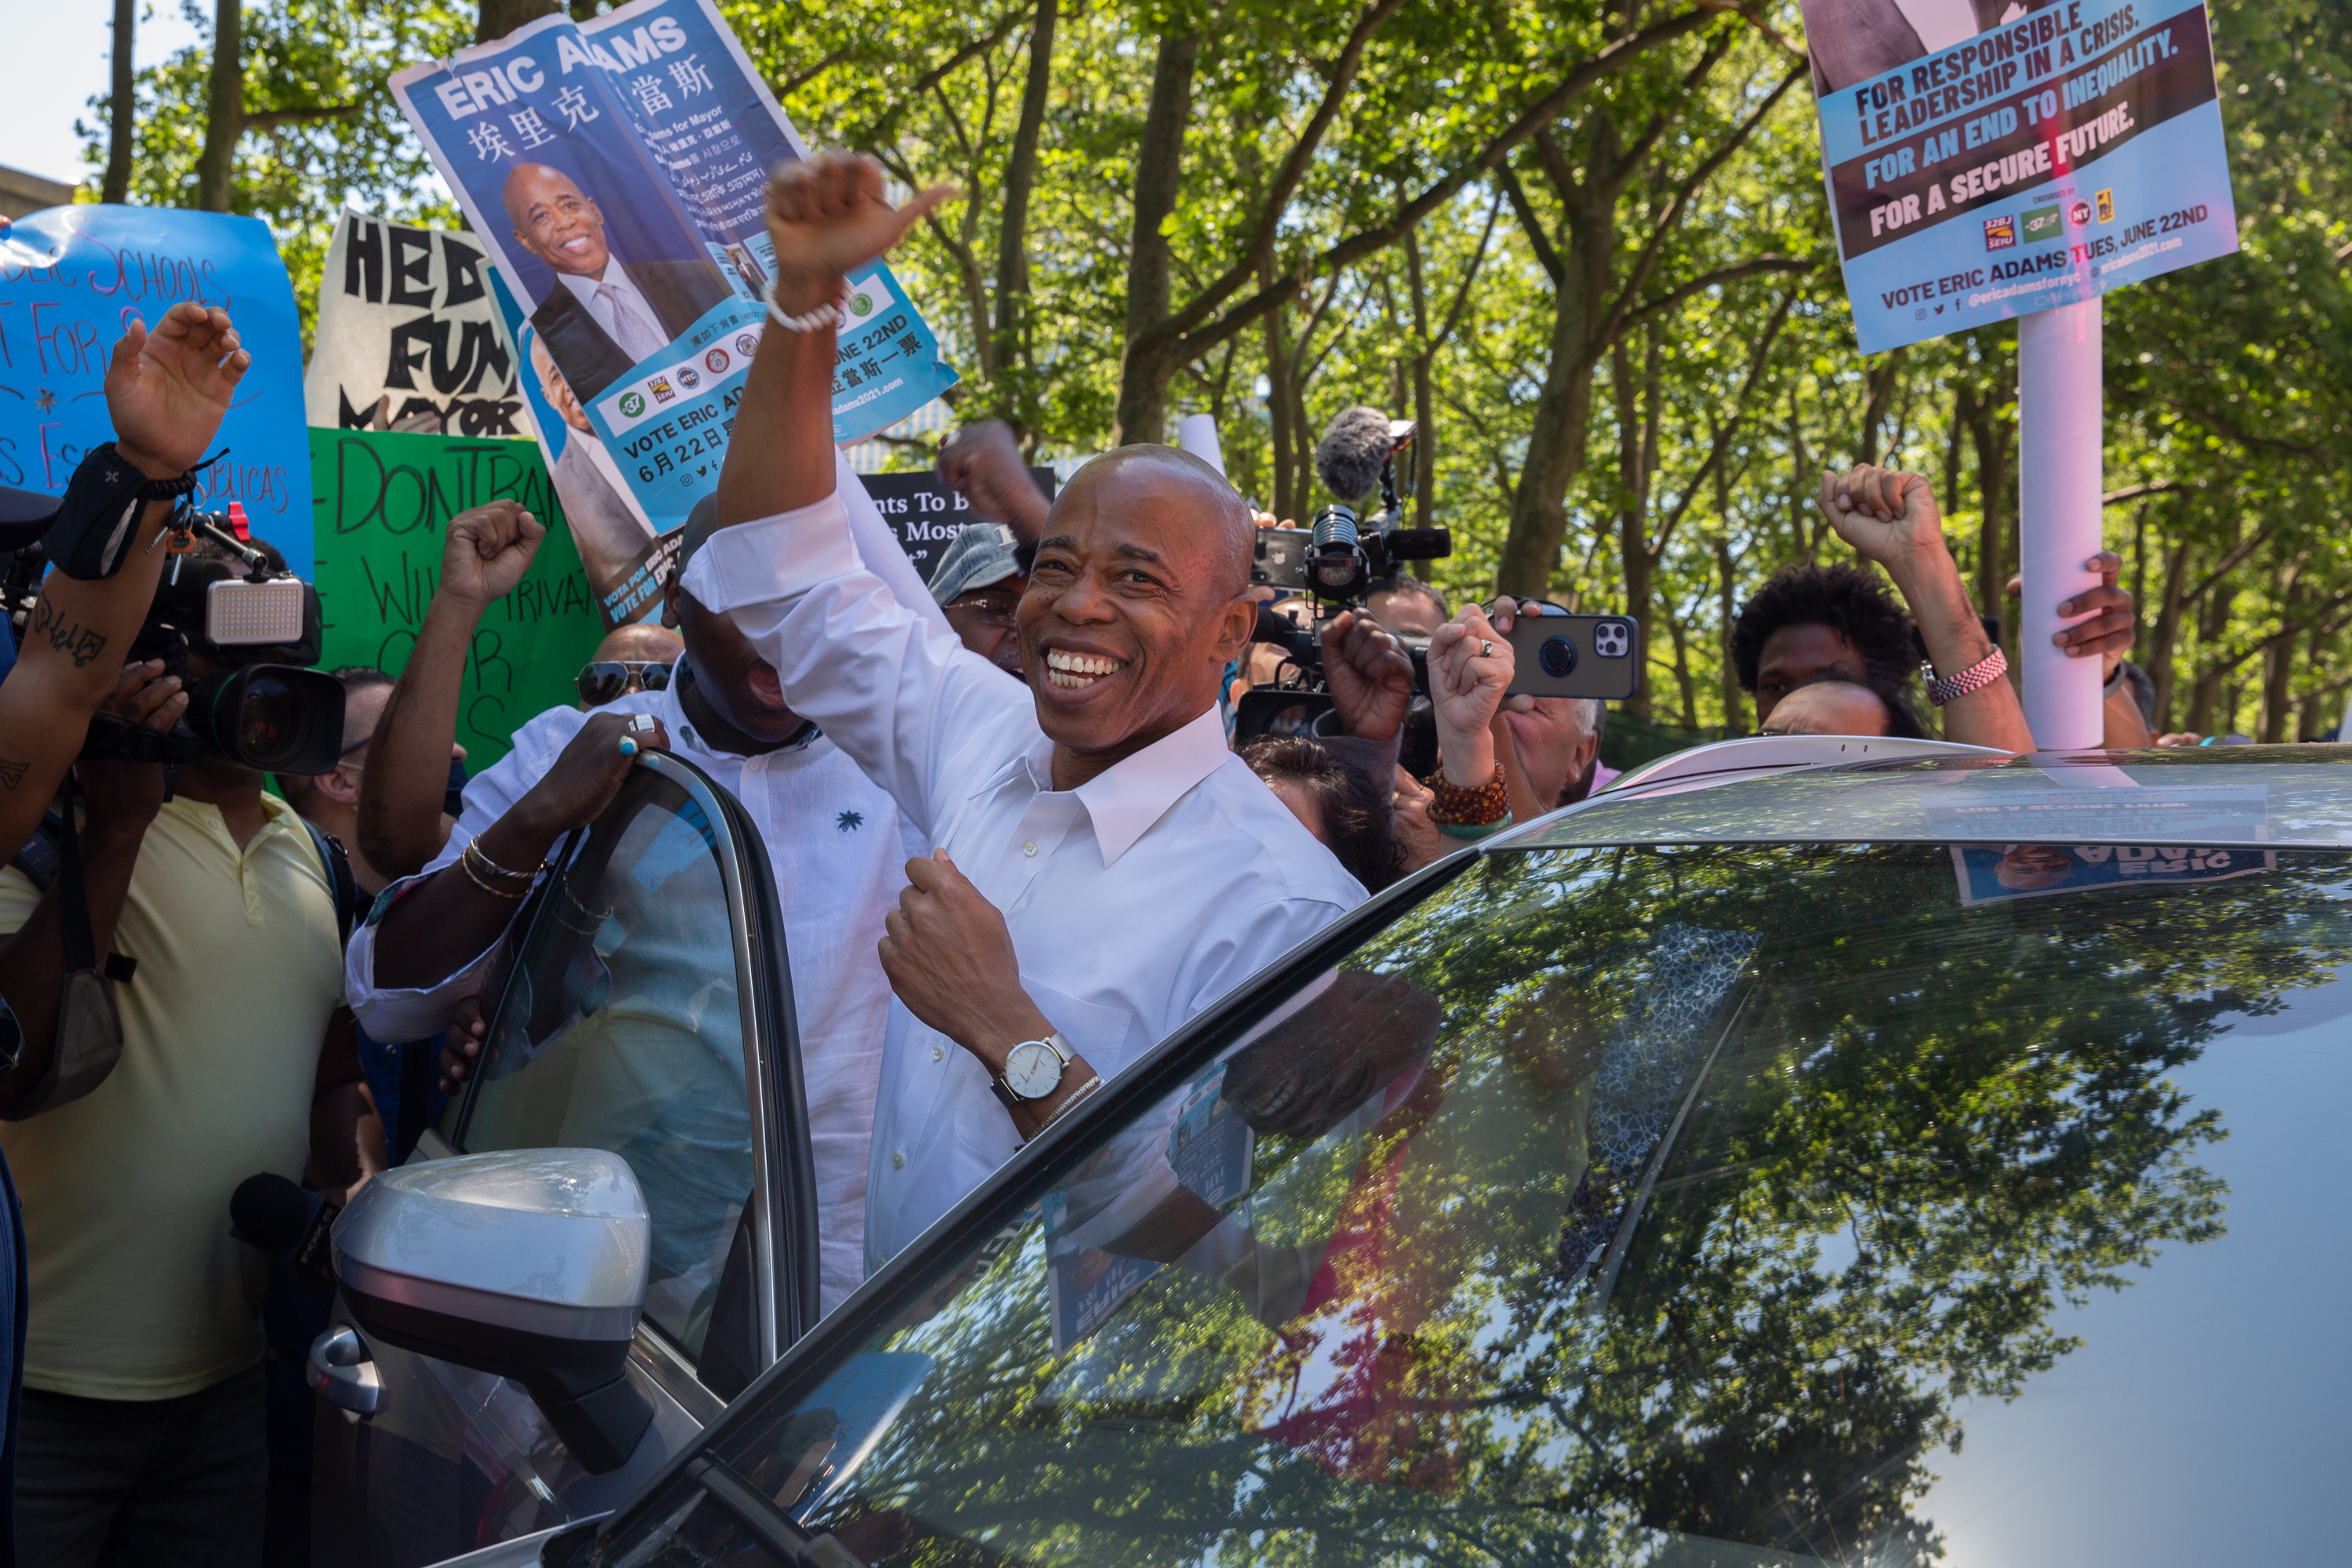 Brooklyn Borough President and mayoral candidate Eric Adams leaves a rally while protesters try to disrupt the event at Cadman Plaza, June 16, 2021.